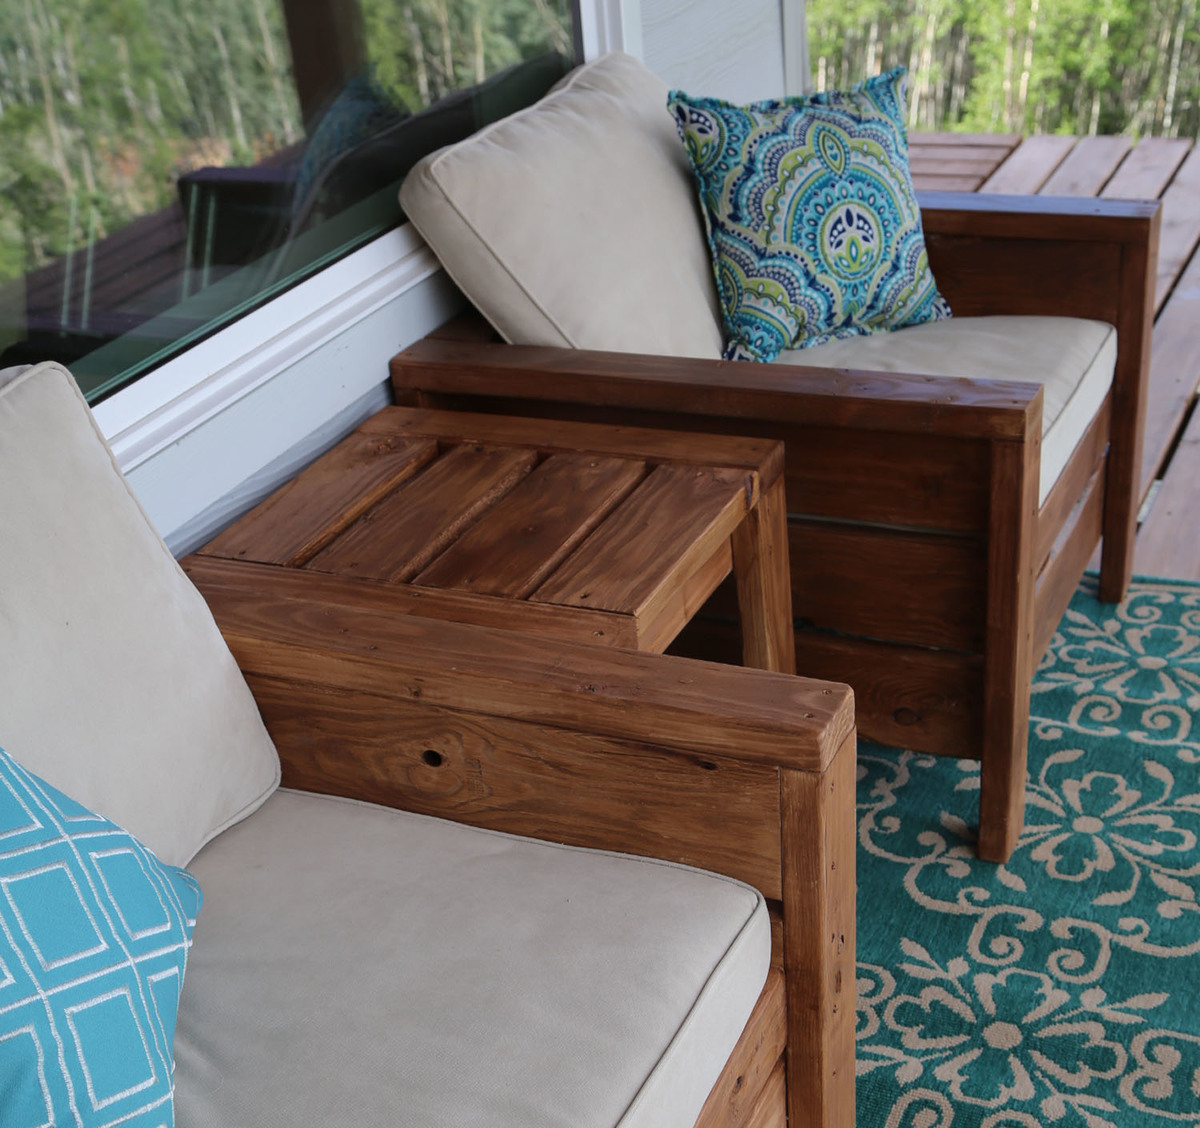 Easy to build sturdy modern outdoor chairs for deck or patio - free plans by Ana-White.com & Ana White | Modern Outdoor Chair from 2x4s and 2x6s - DIY Projects